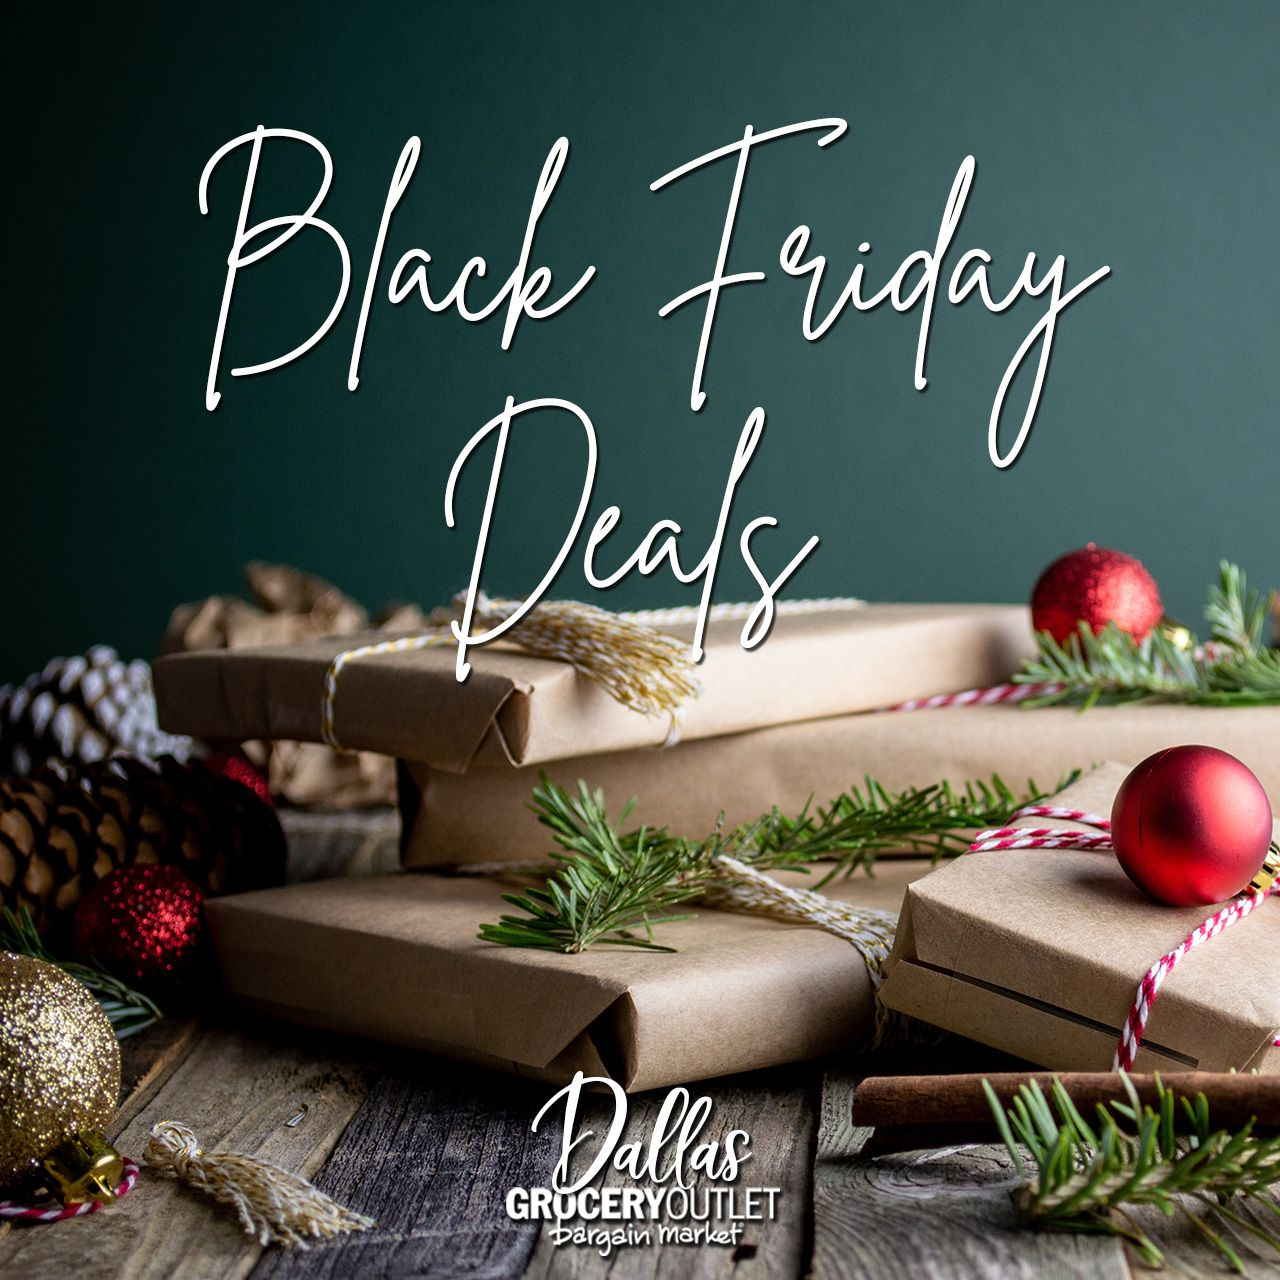 #BlackFriday deals happening now through Tuesday, December 3, 2019 Because who really wants to see food ads after Thanksgiving🙃 . . #DallasGroceryOutlet #ShopDallasGOLocal #DallasOregon #BargainBliss